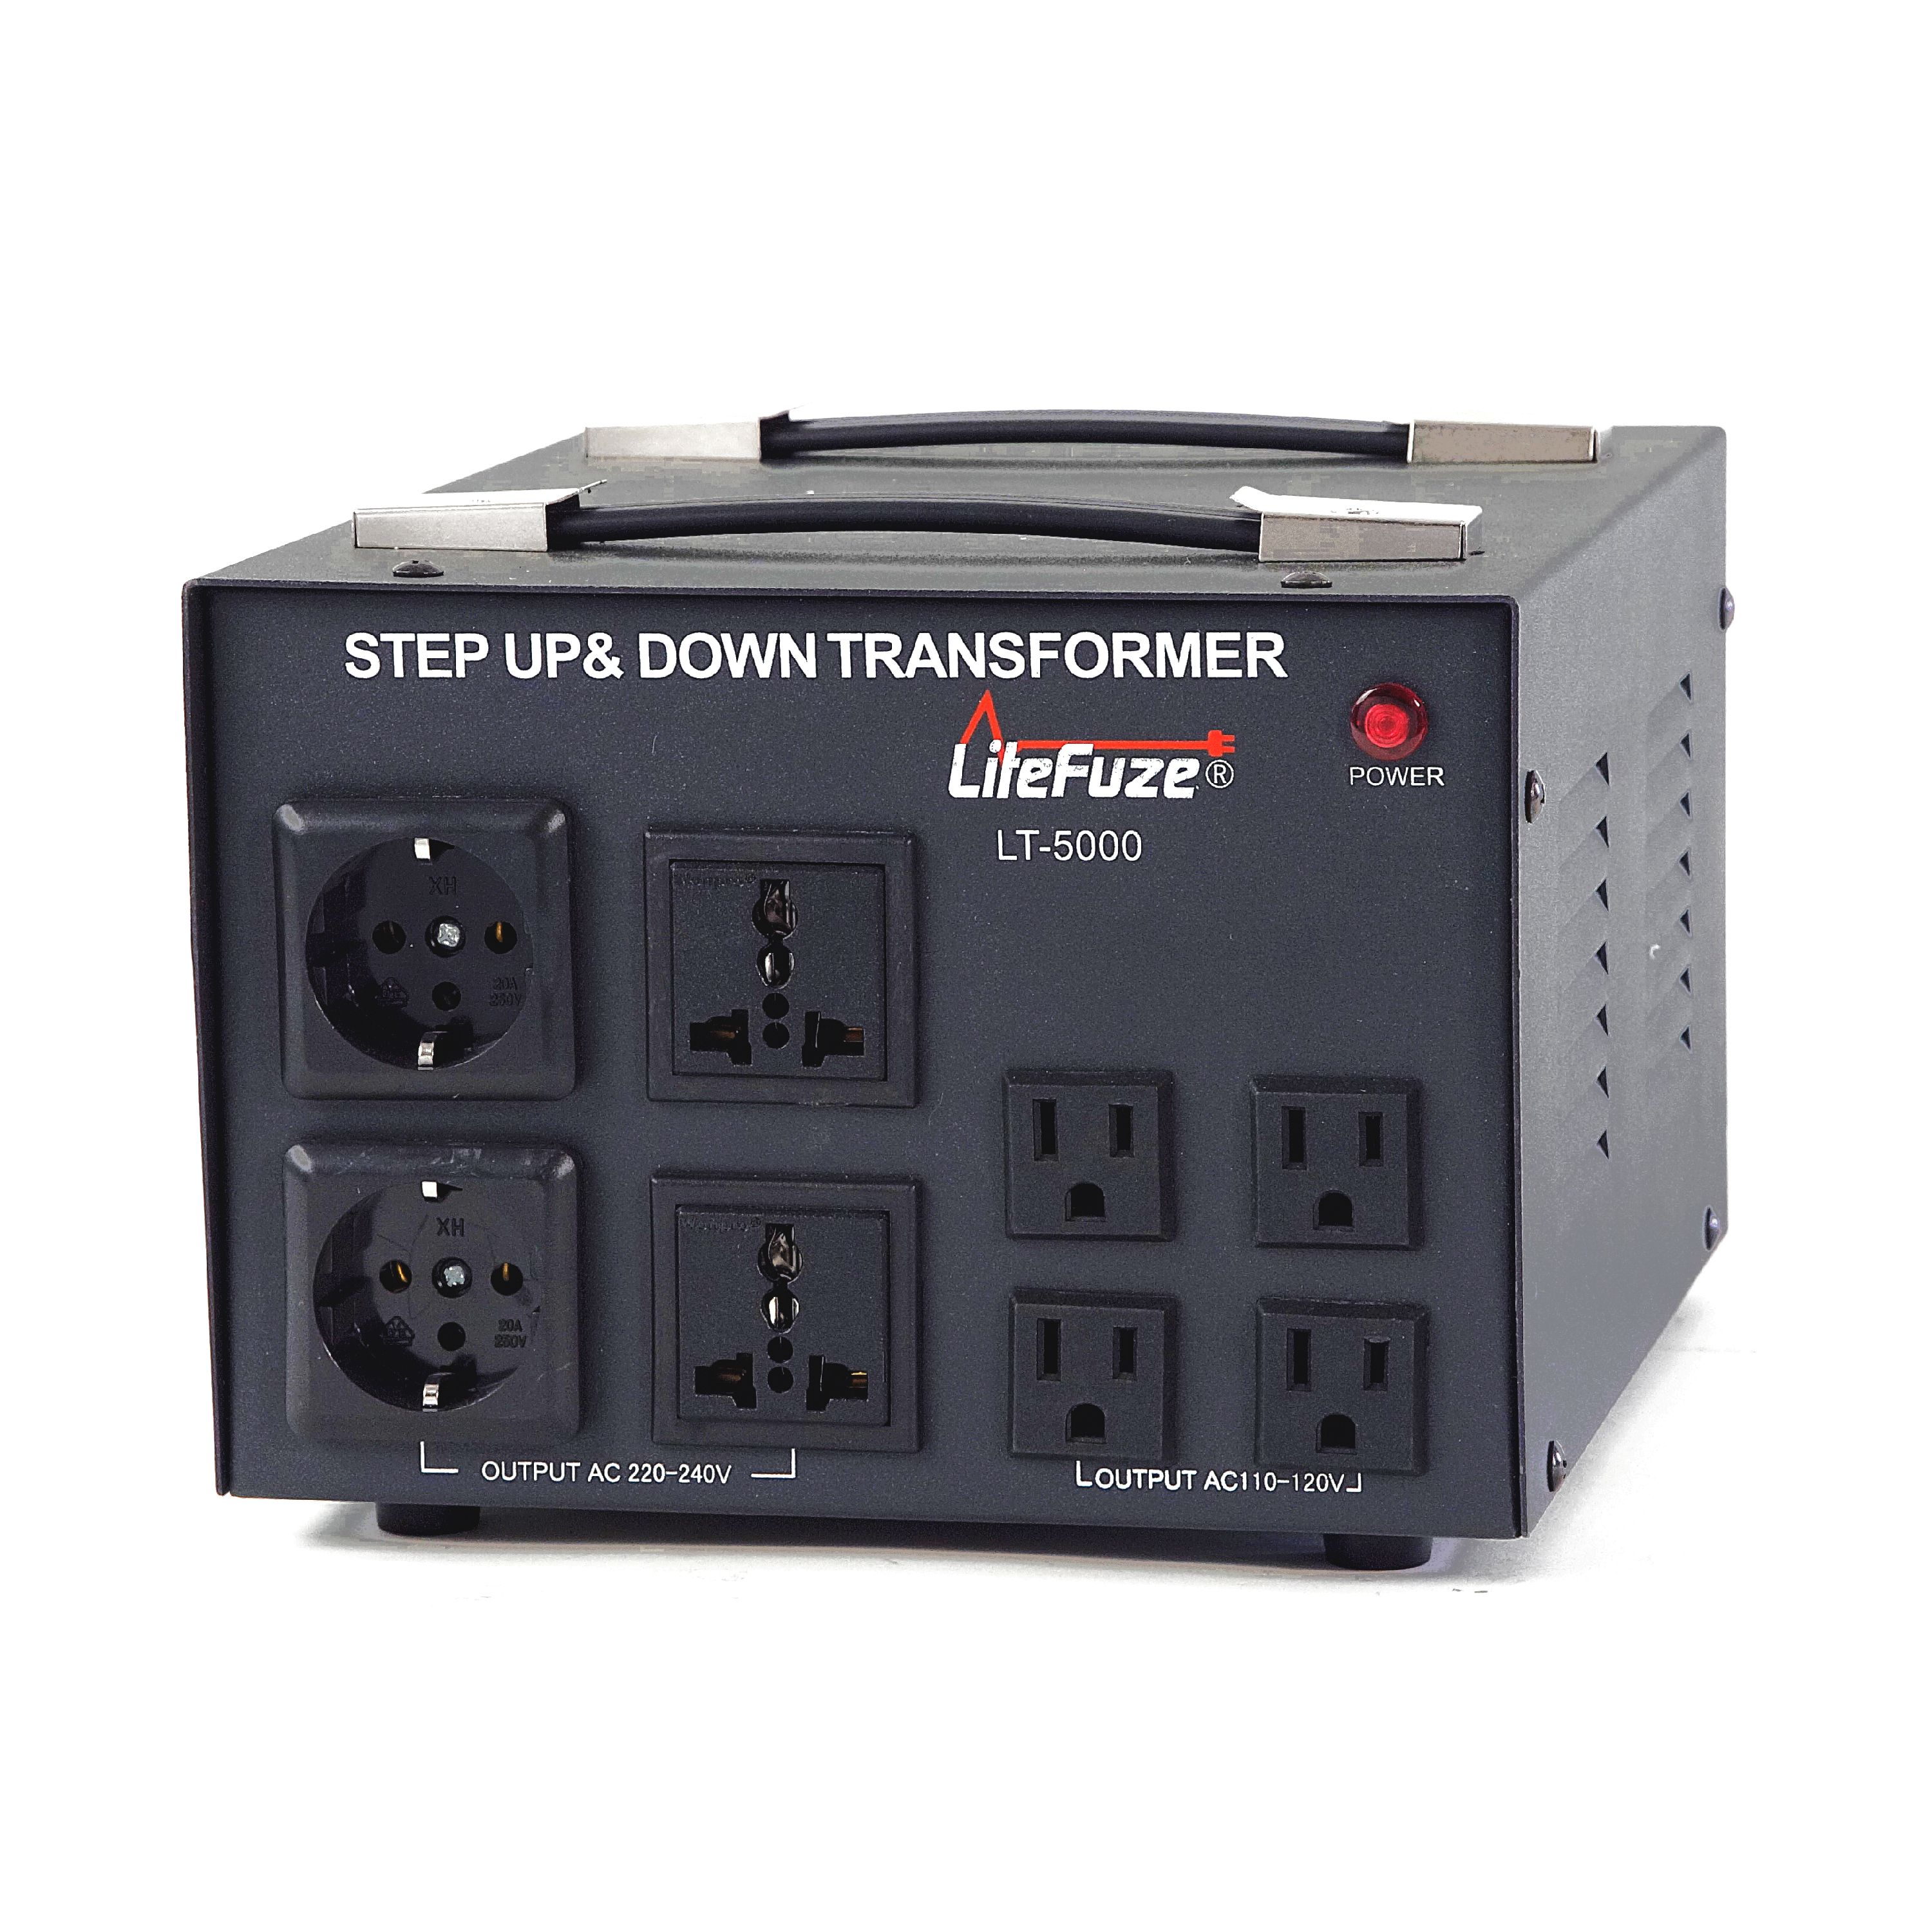 LiteFuze LT-5000 5000 Watt Voltage Converter Transformer - Step Up/Down - 110V/220V - Circuit Breaker Protection